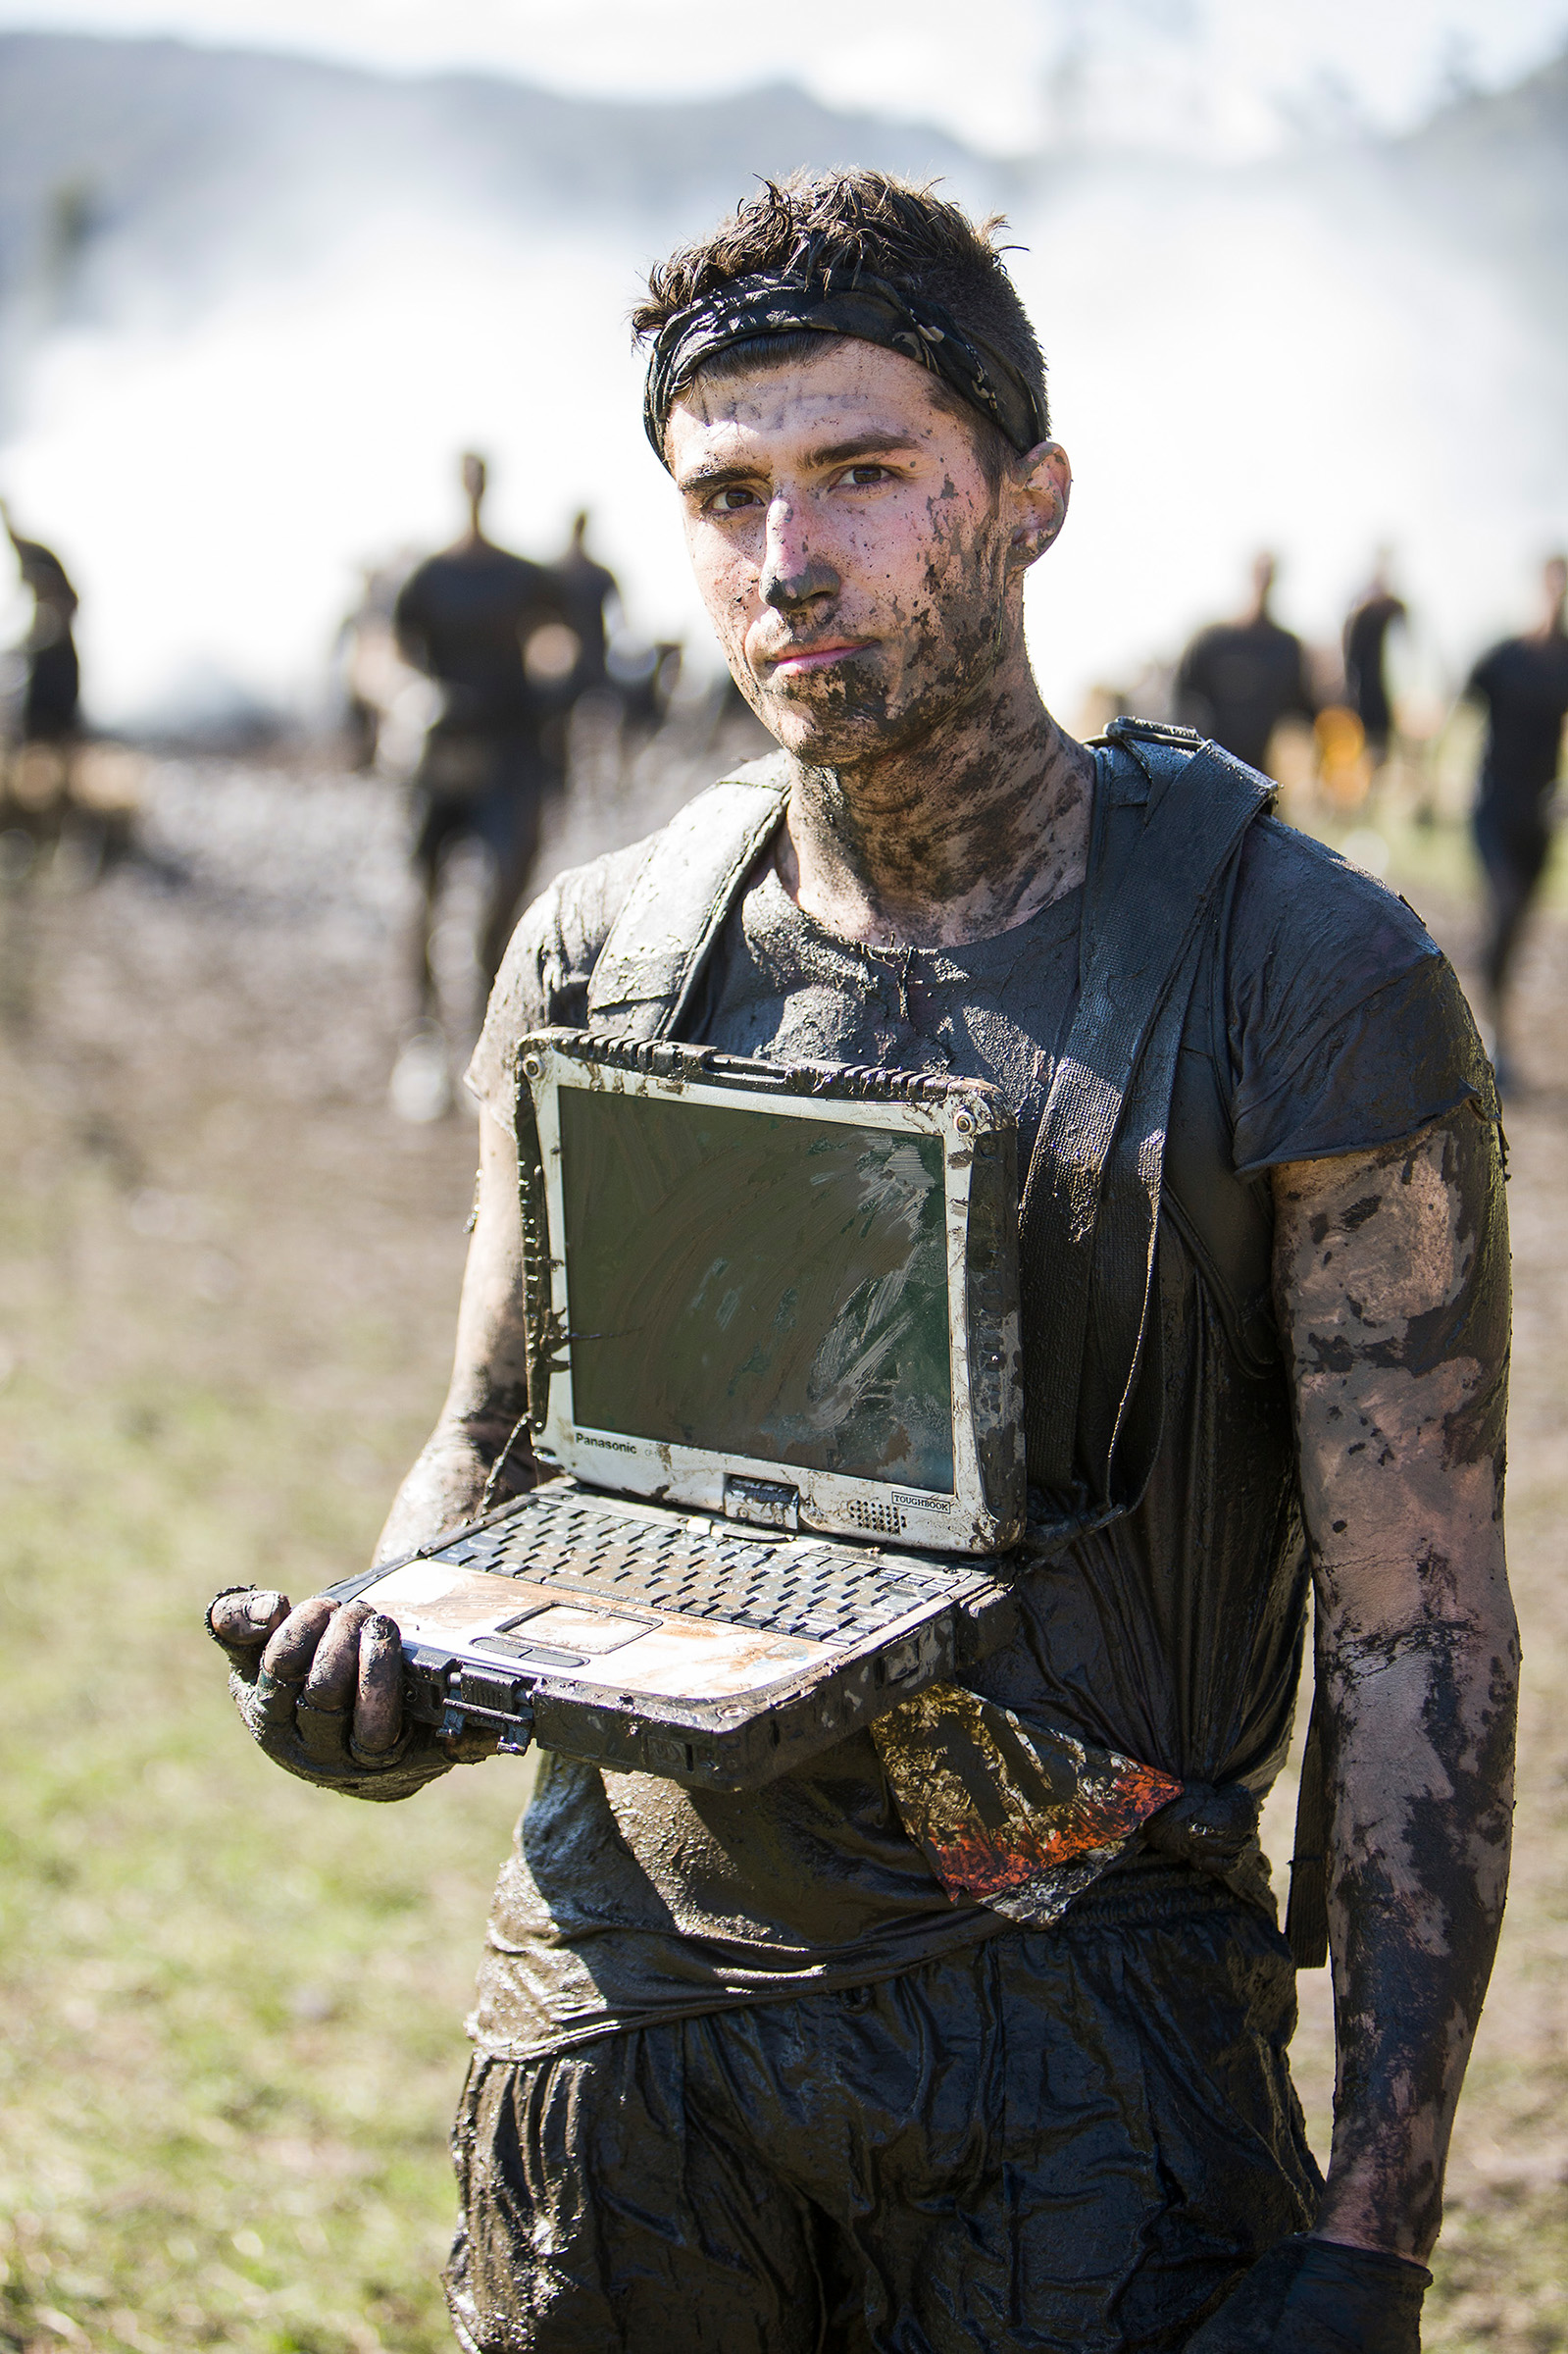 Location product photography competitor racing through mud with Panasonic Toughbook ToughMudder